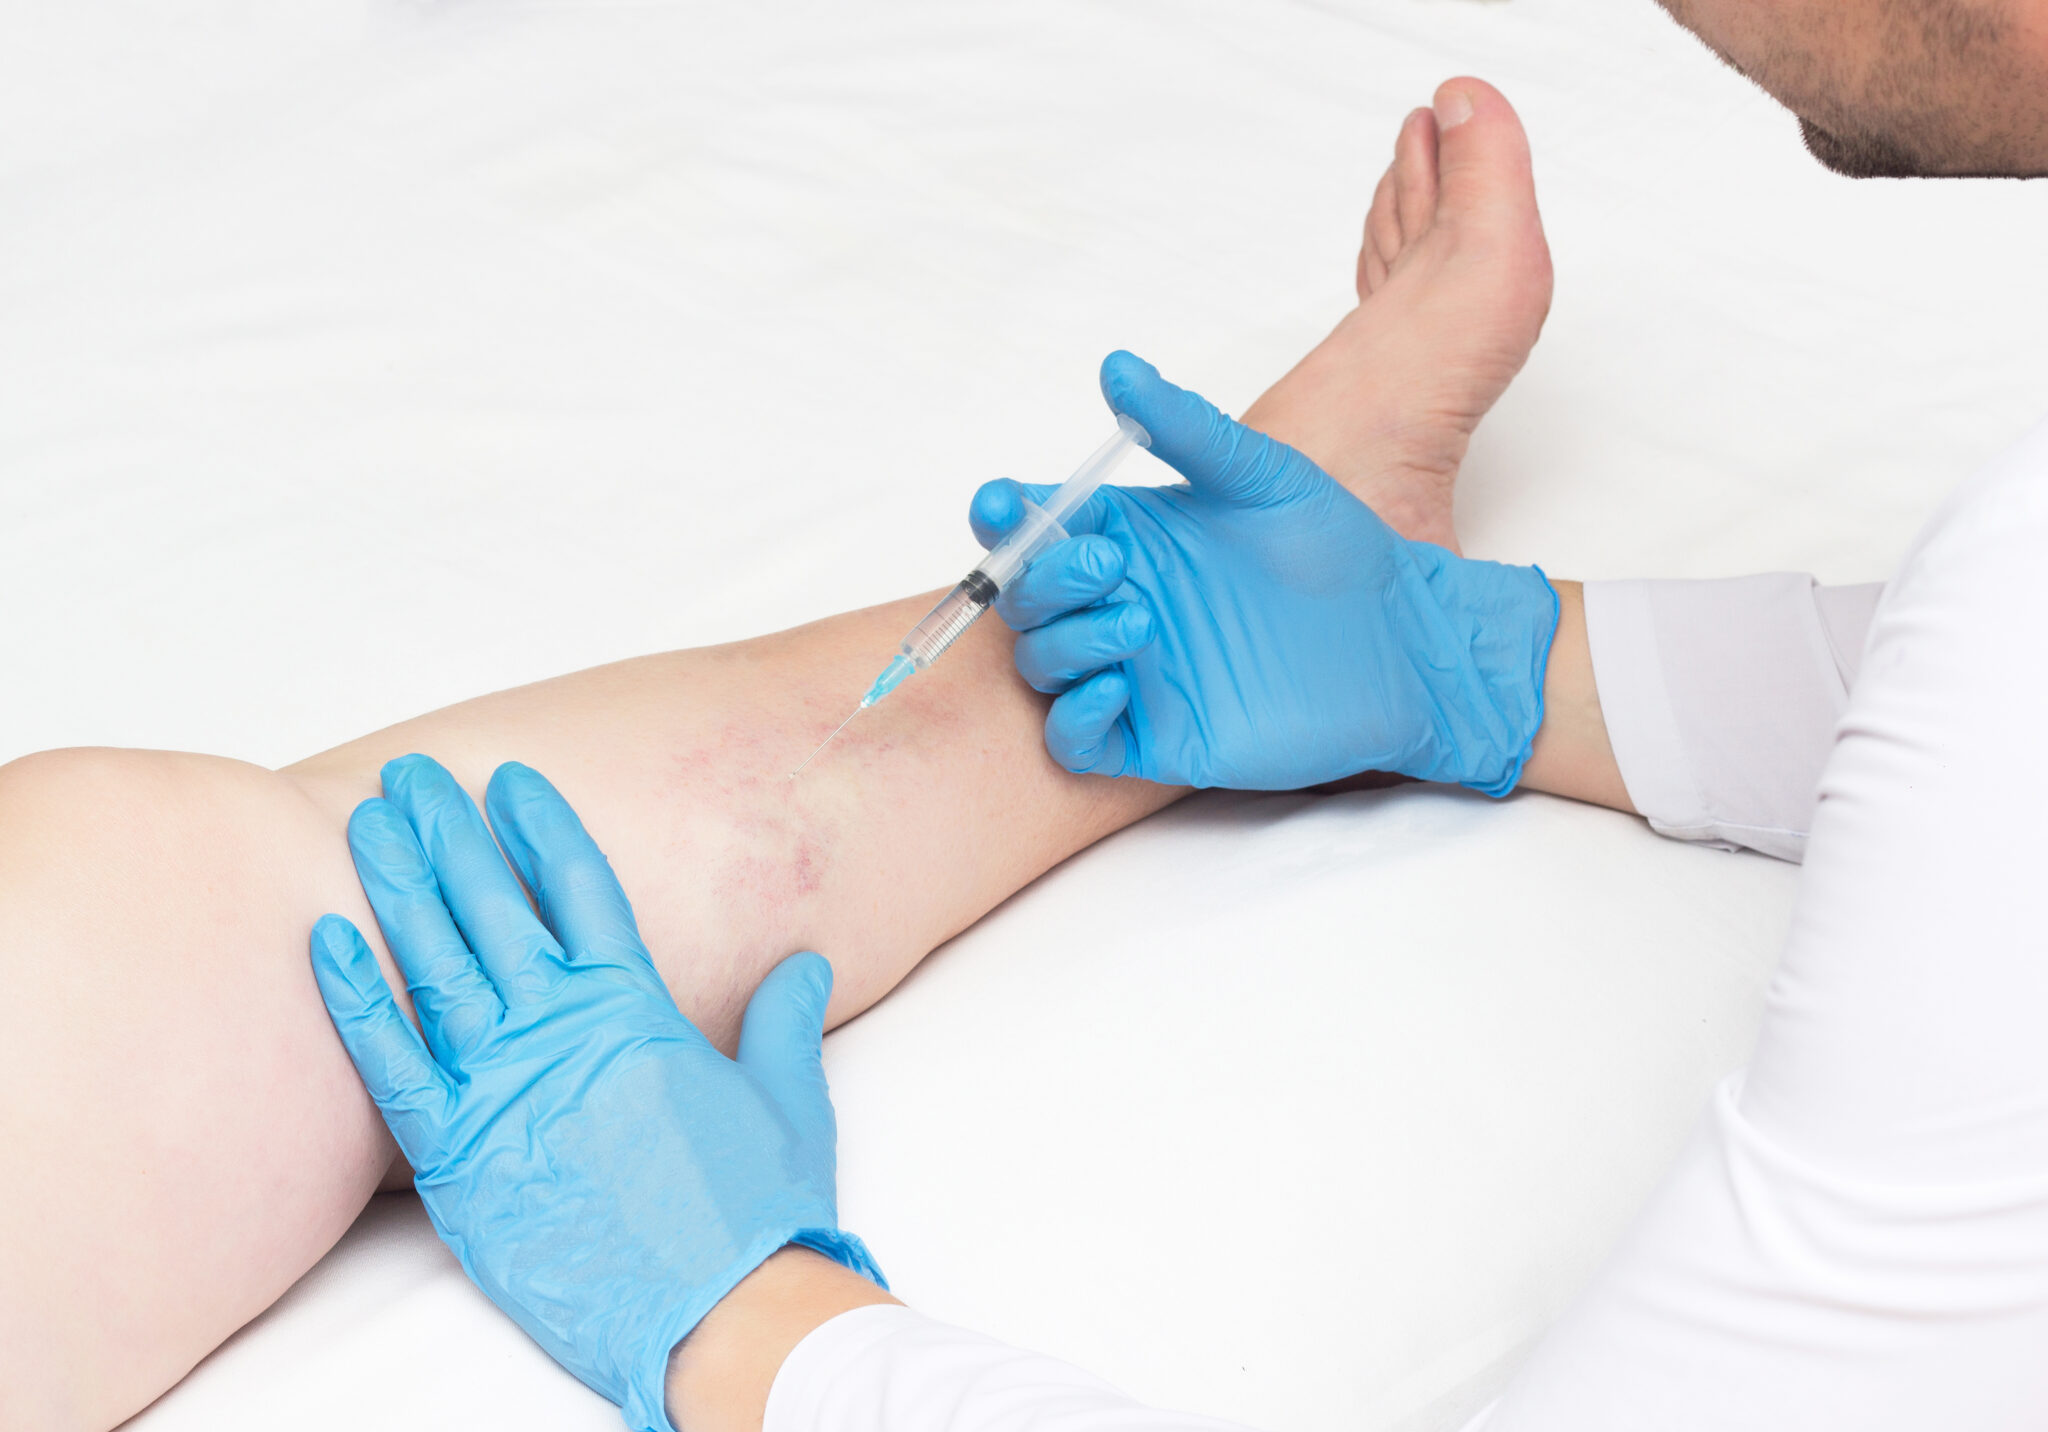 Headed to a Hamptons beach this summer? Want to erase your damaged veins before you go? Visit the vein center Hamptons residents choose for flawless skin.